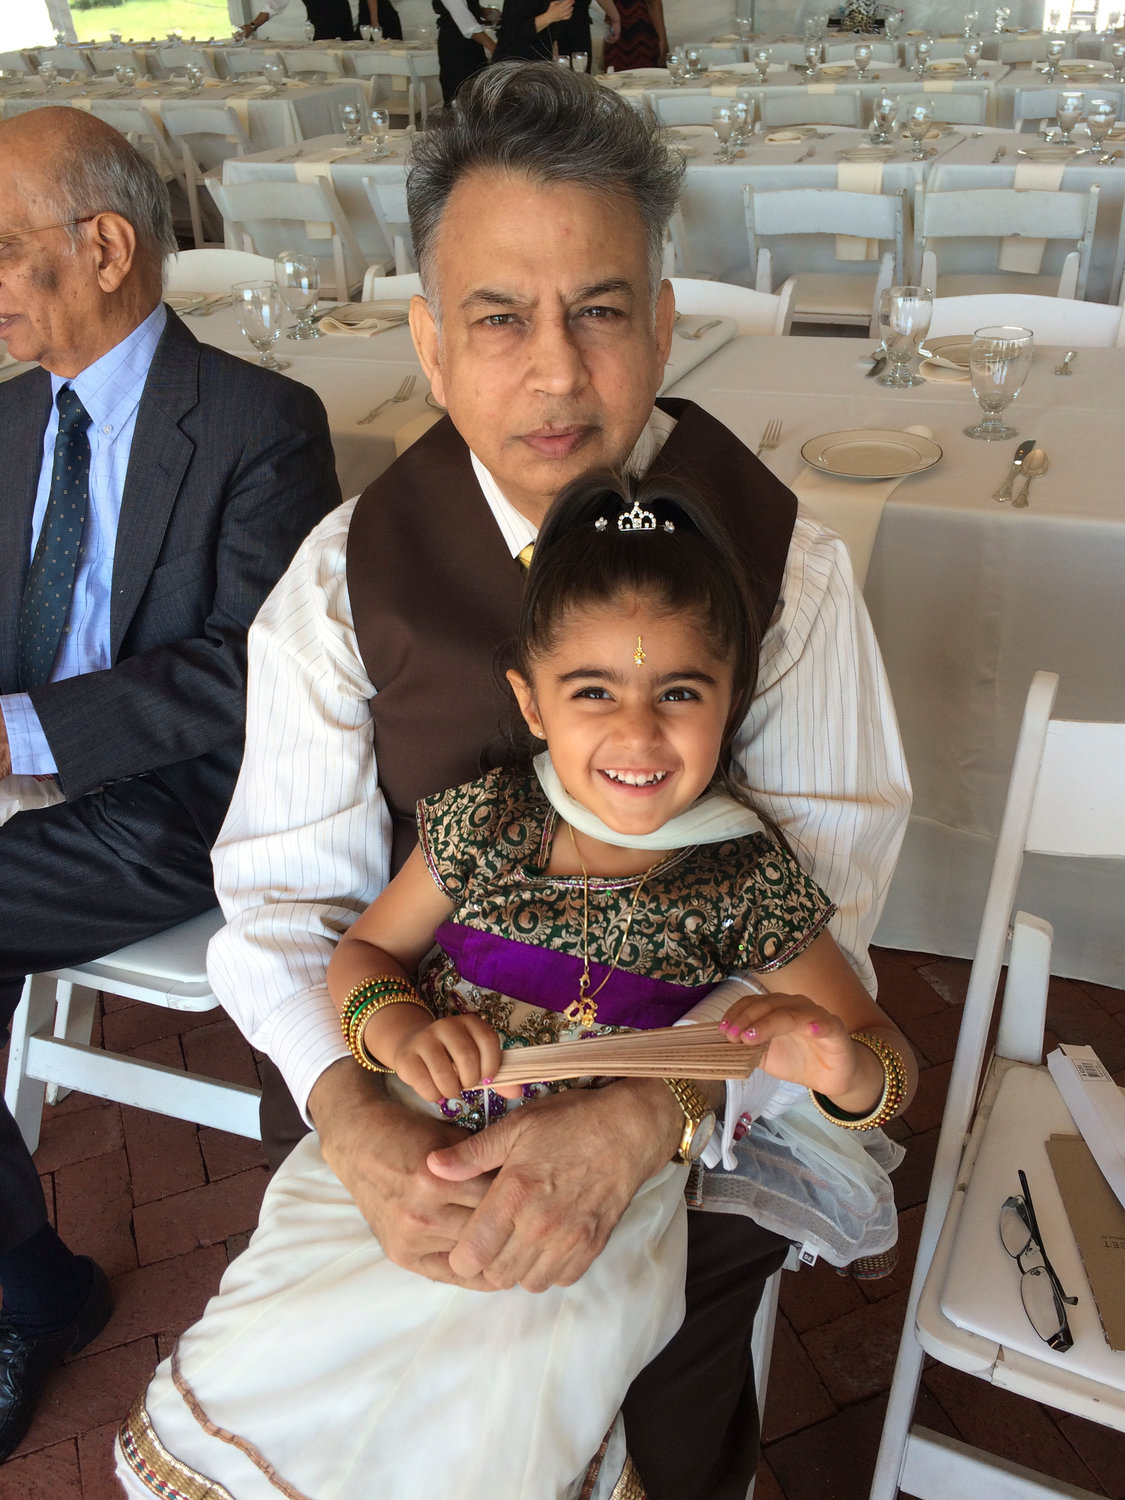 Diya raised $800 to support the American Diabetes Association in honor of her grandfather, Bhagwan Sakhrani.